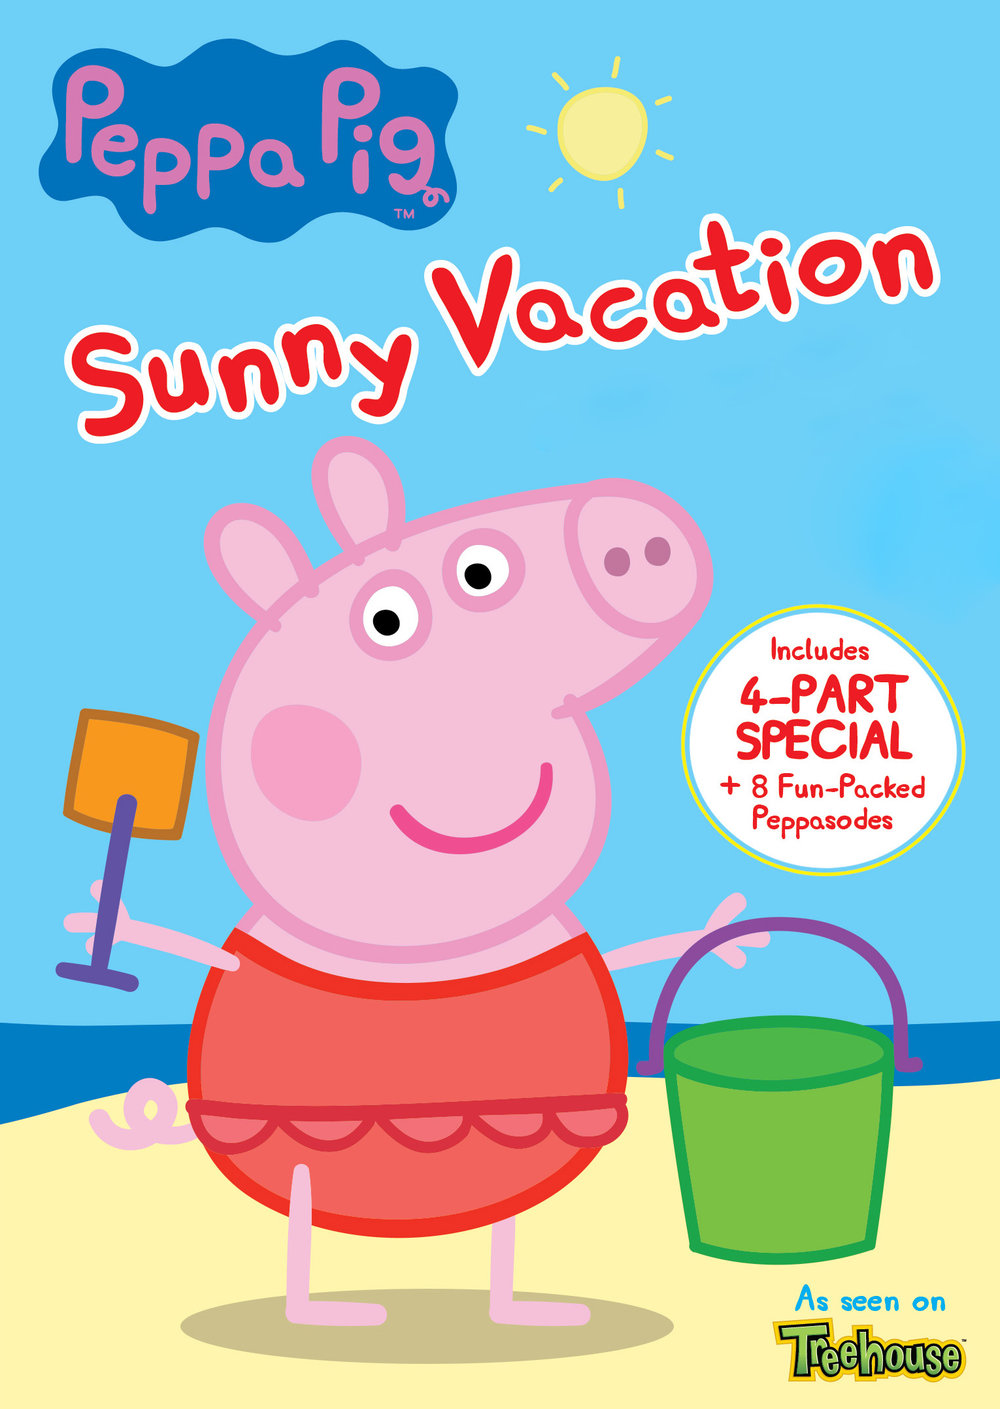 271155DVWR_PEPPA_SUNNYVACATION_CAN_FLAT.jpg